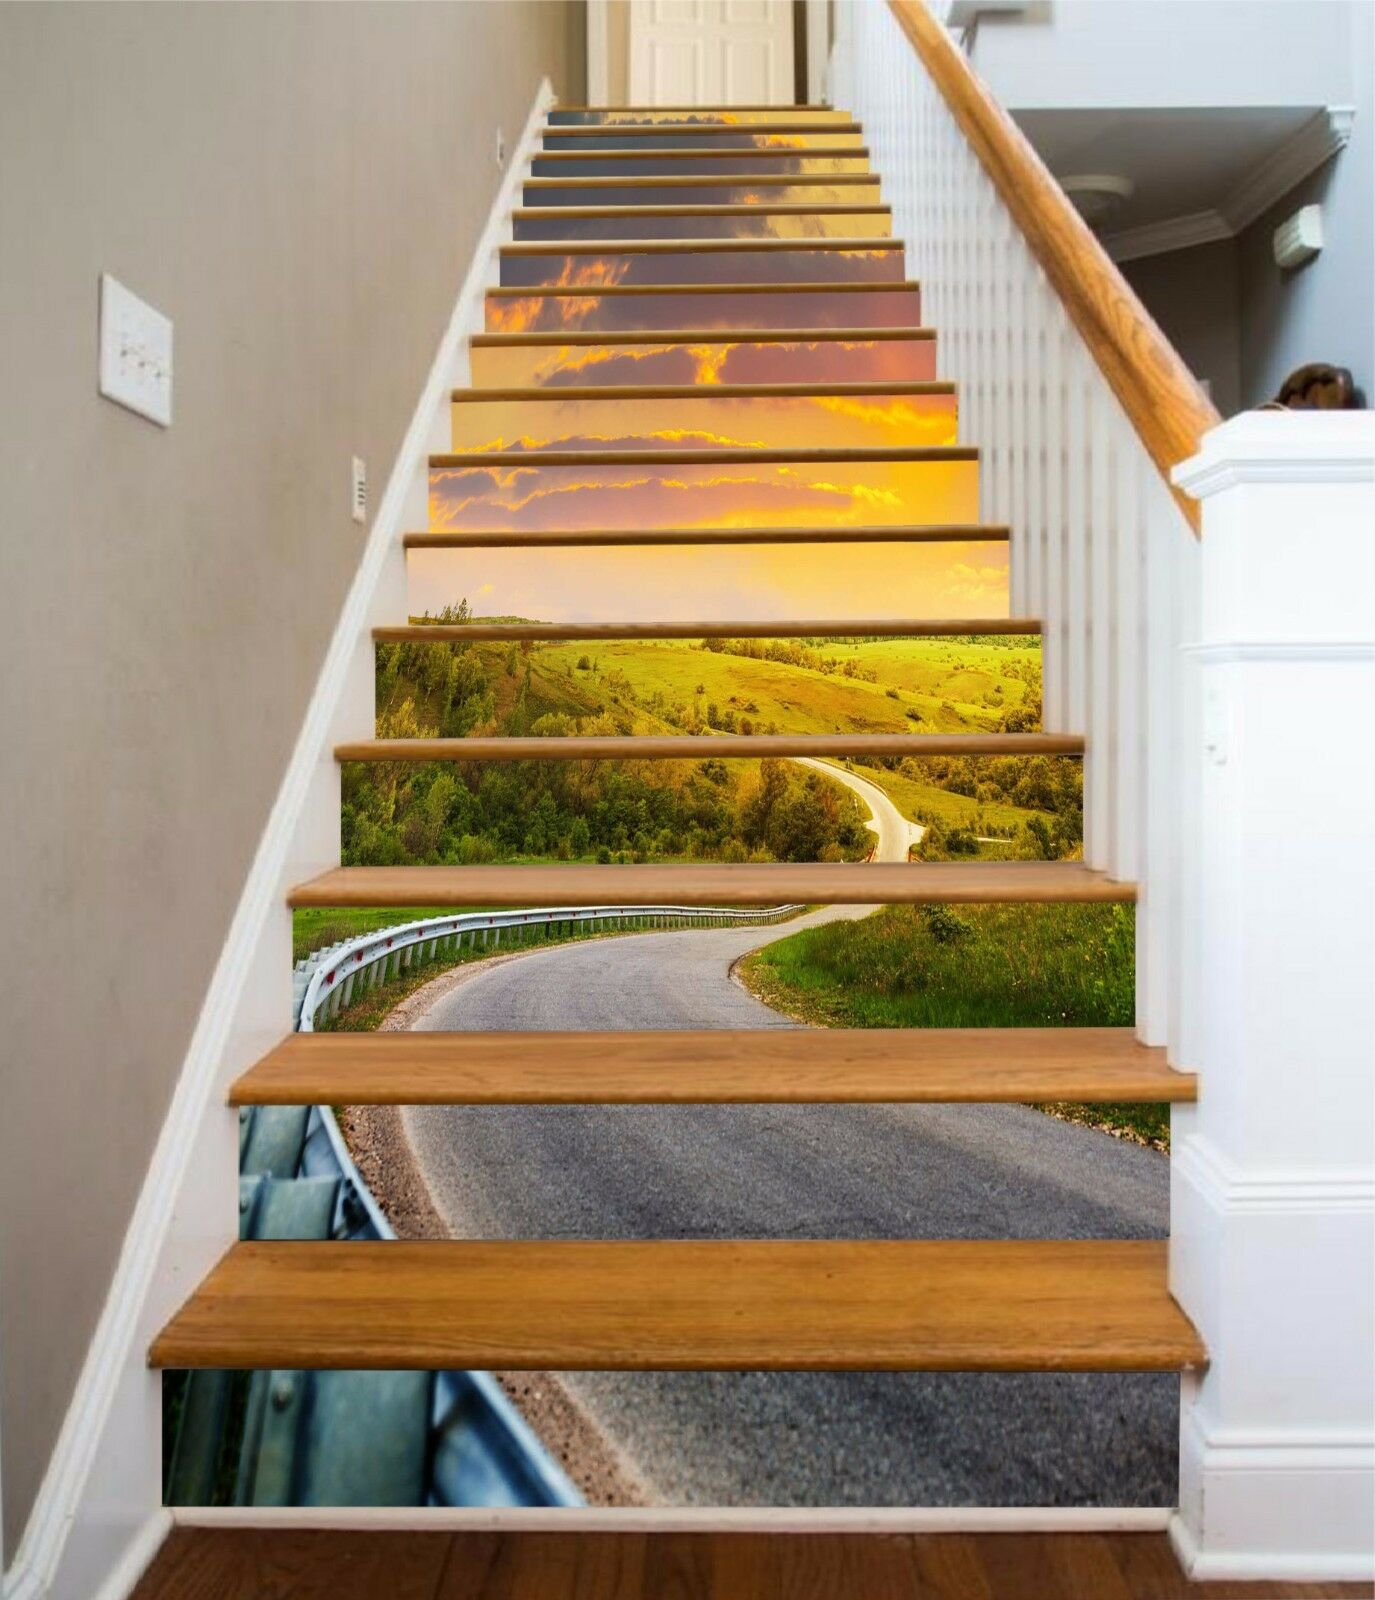 3D Road Scenery 996 Stair Risers Decoration Photo Mural Vinyl Decal Wallpaper AU